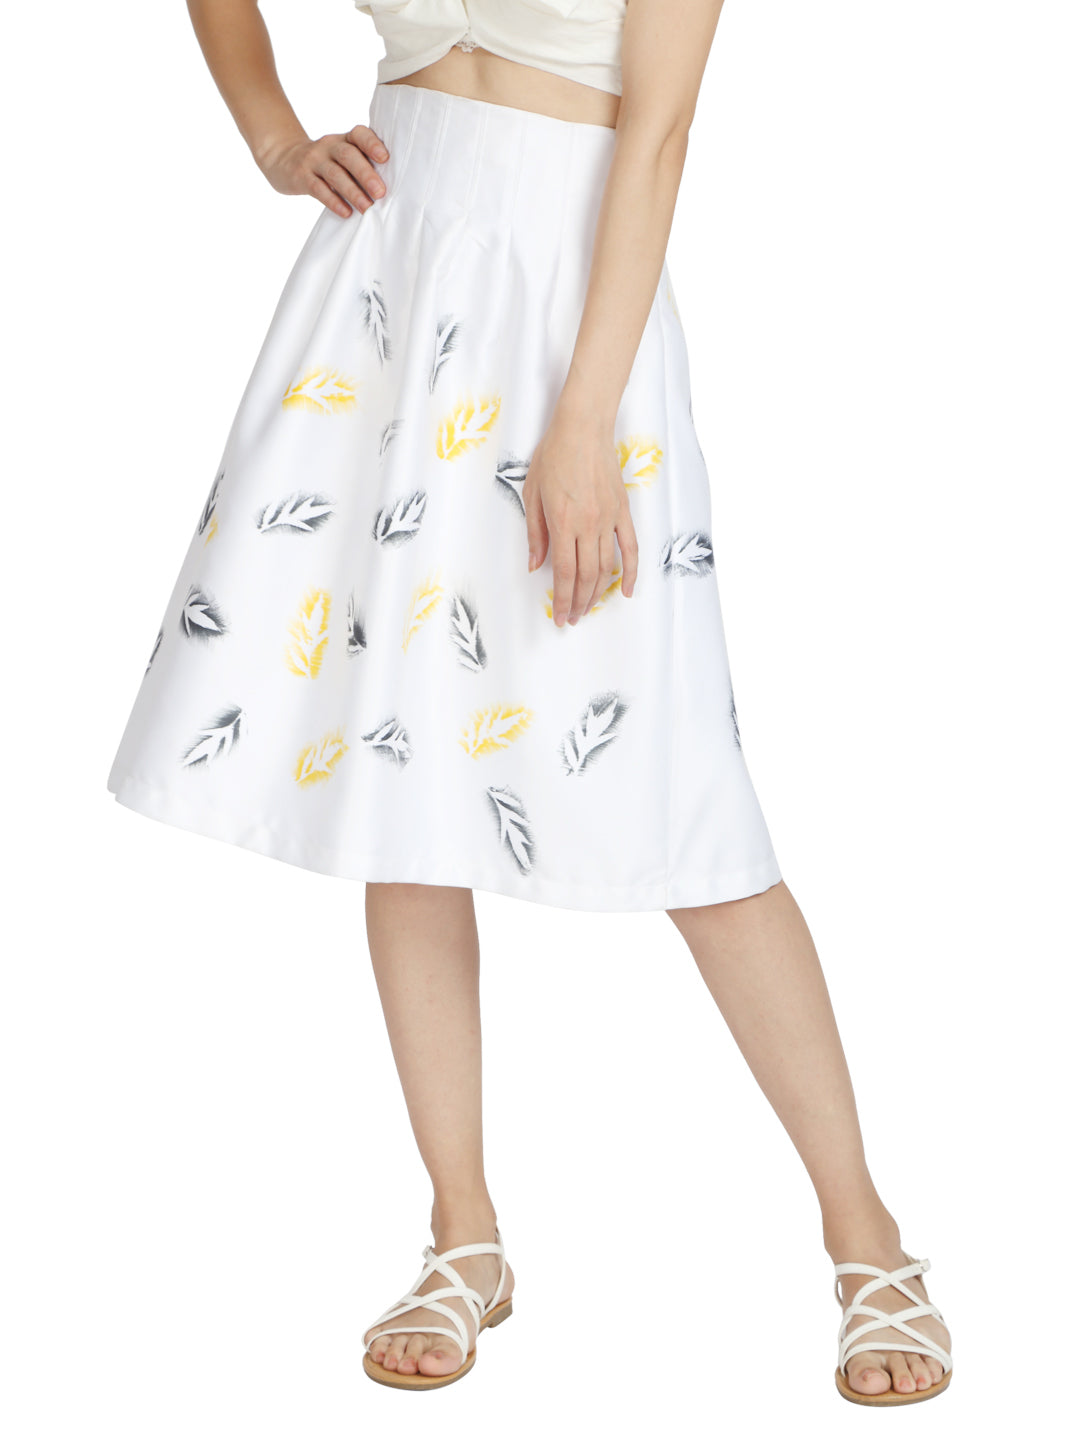 Skirt in Recycled Poly with Birch Tree Leaves